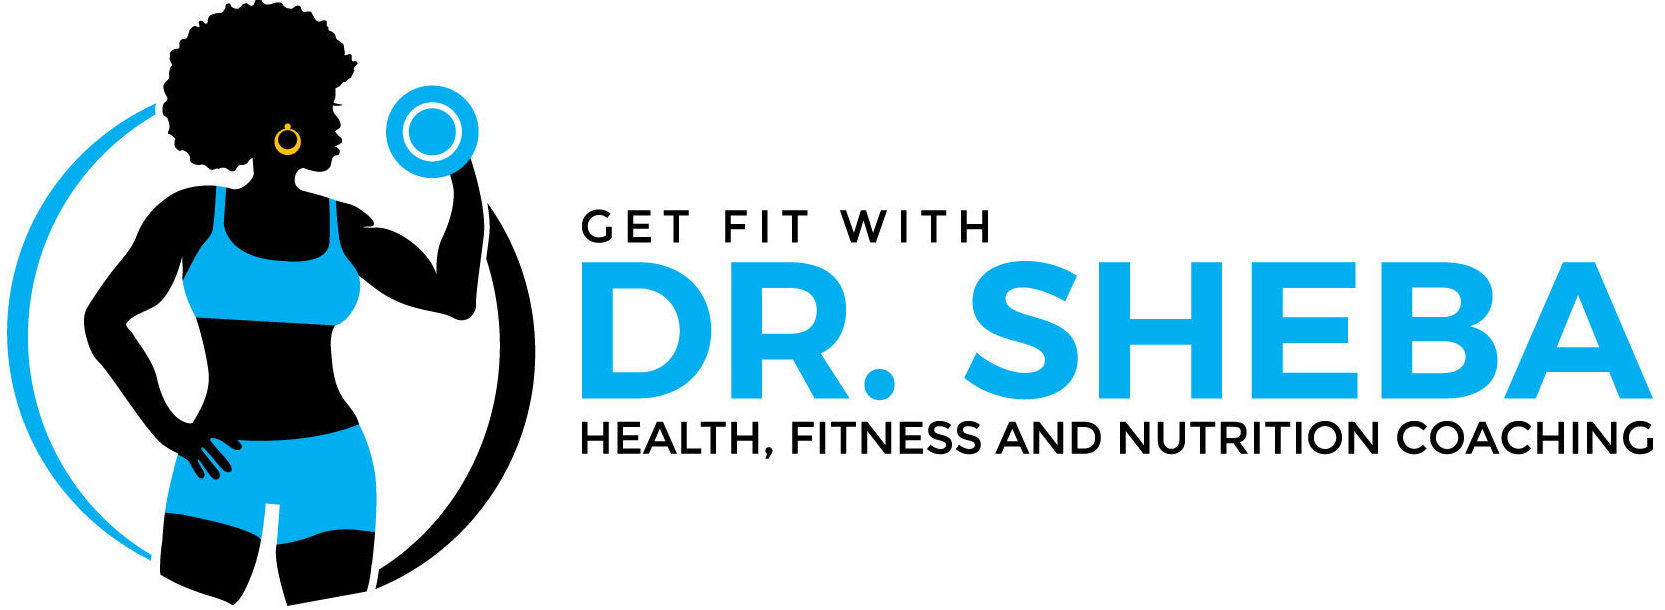 Dr. Sheba's Health Coaching and Education Services